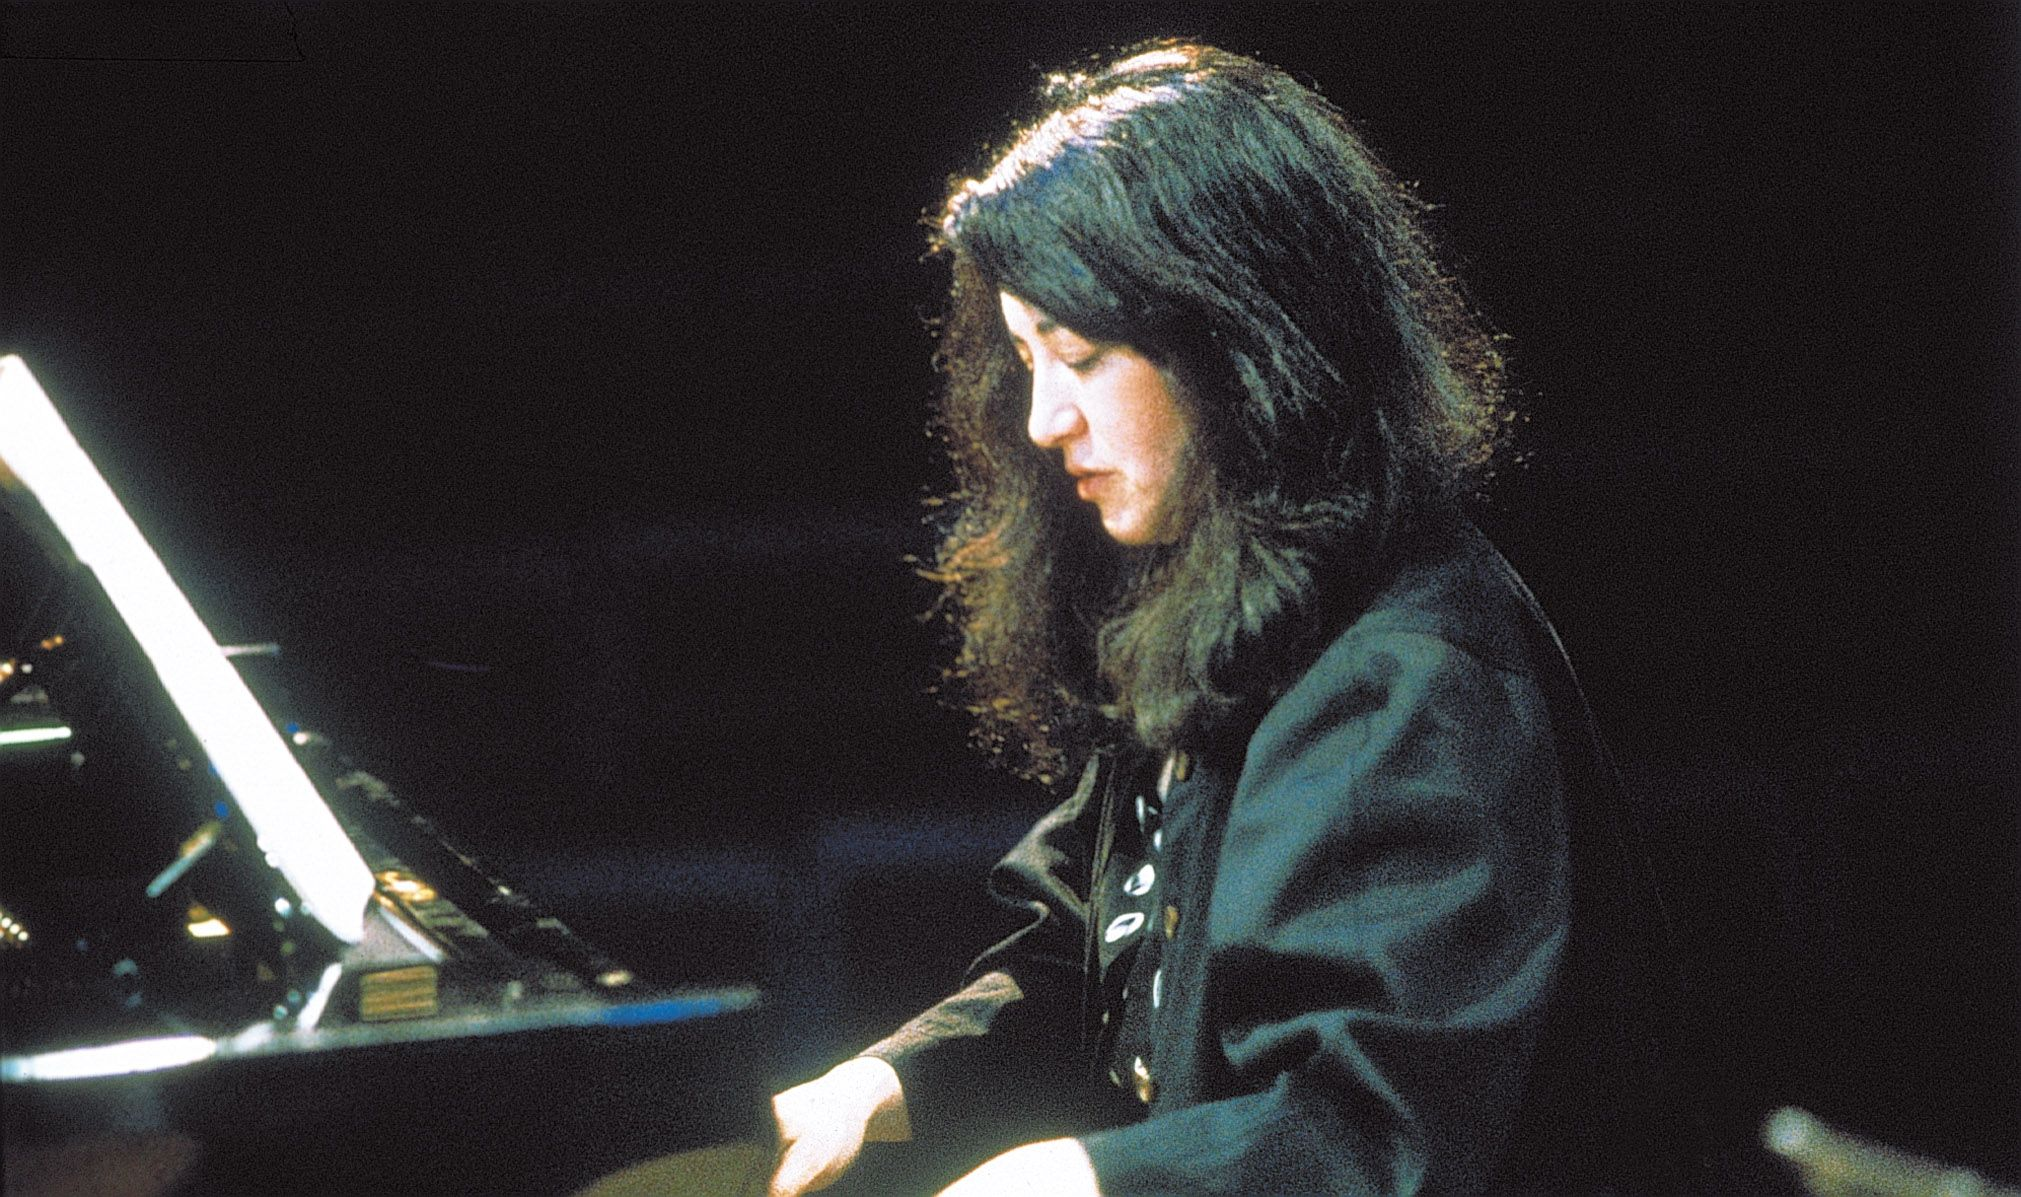 Martha Argerich plays Frederic Chopin https://pianoexplorations.com/chopininterpreters